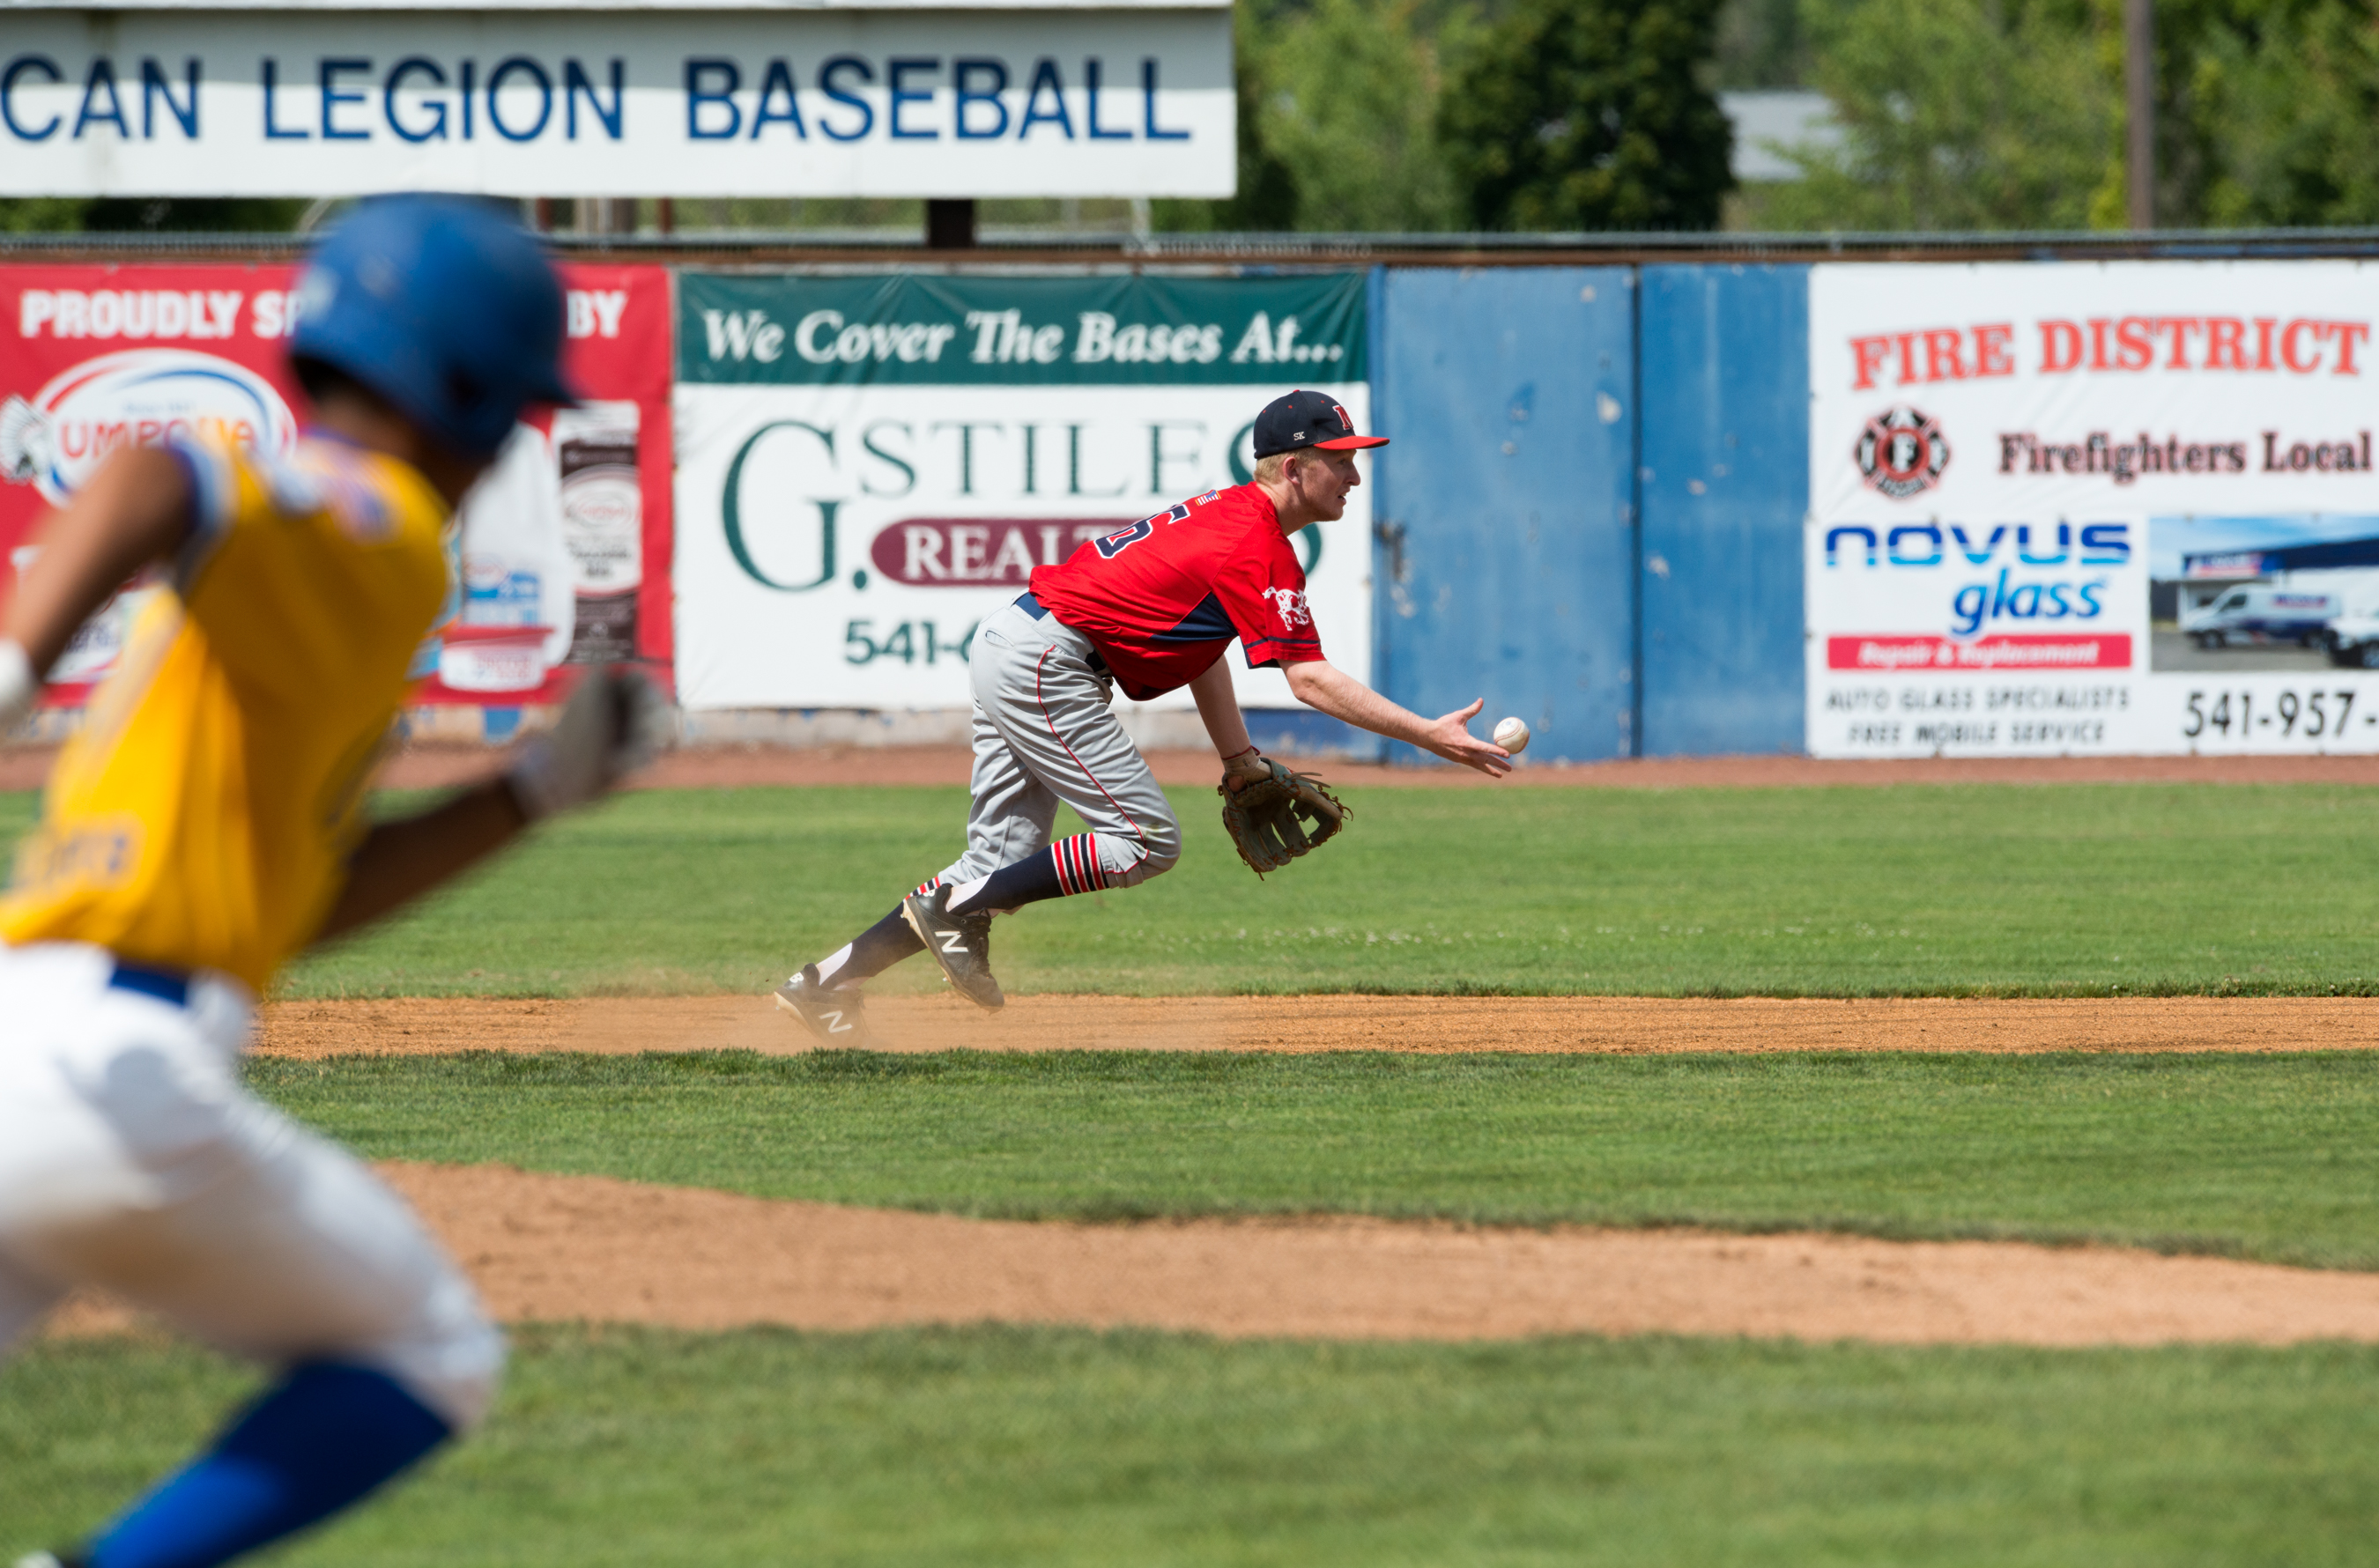 Medford shortstop Zac Ankeny flips the ball toward second after fielding a grounder by Corvallis' Azel Bumpus during Tuesday's game at Legion Field.